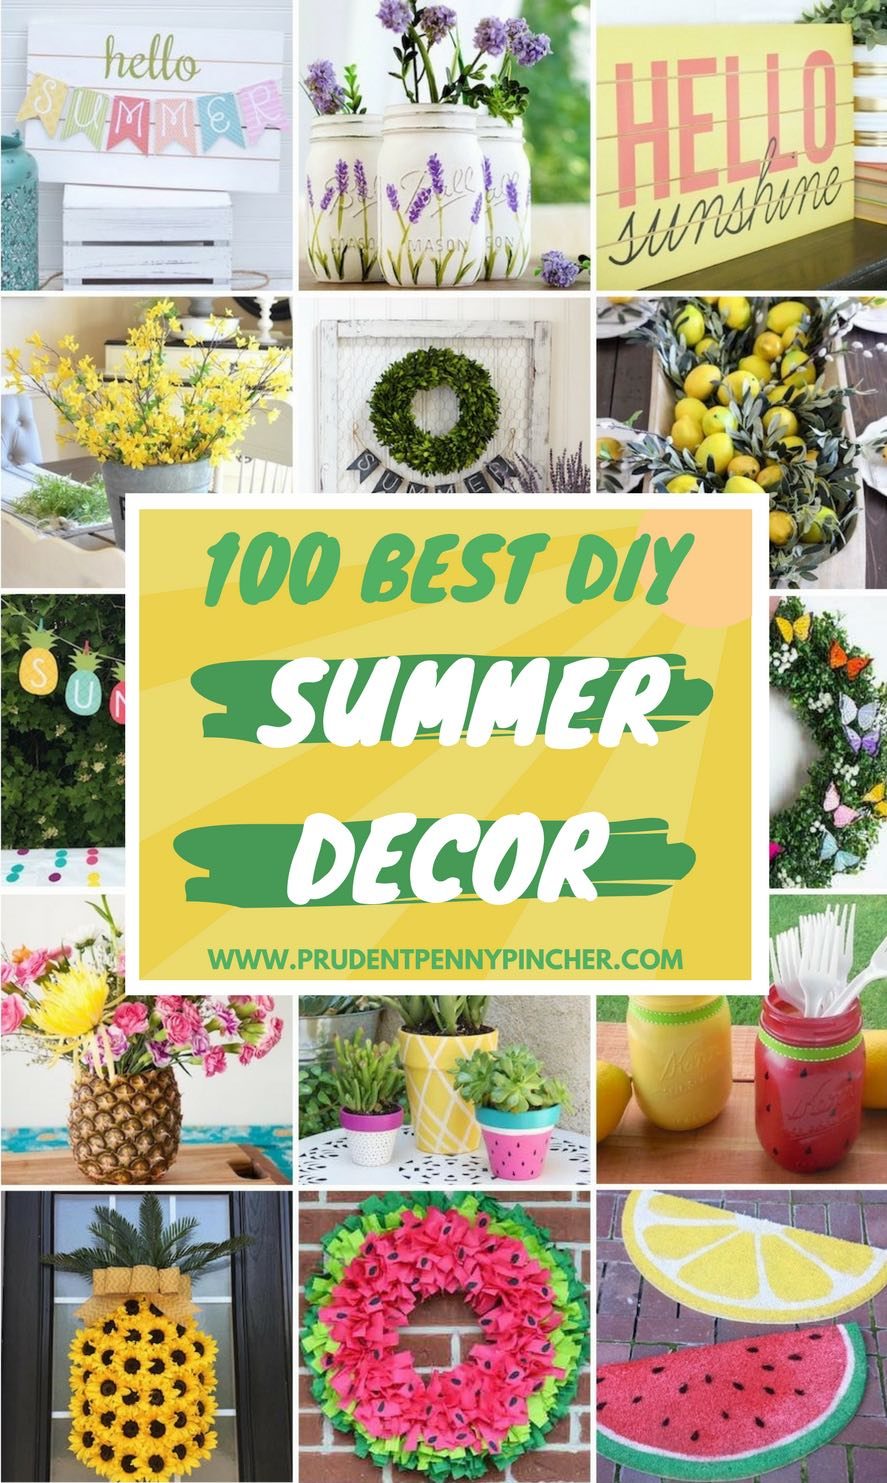 3 Home Decor Trends For Spring Brittany Stager: 100 Best DIY Summer Decor Ideas